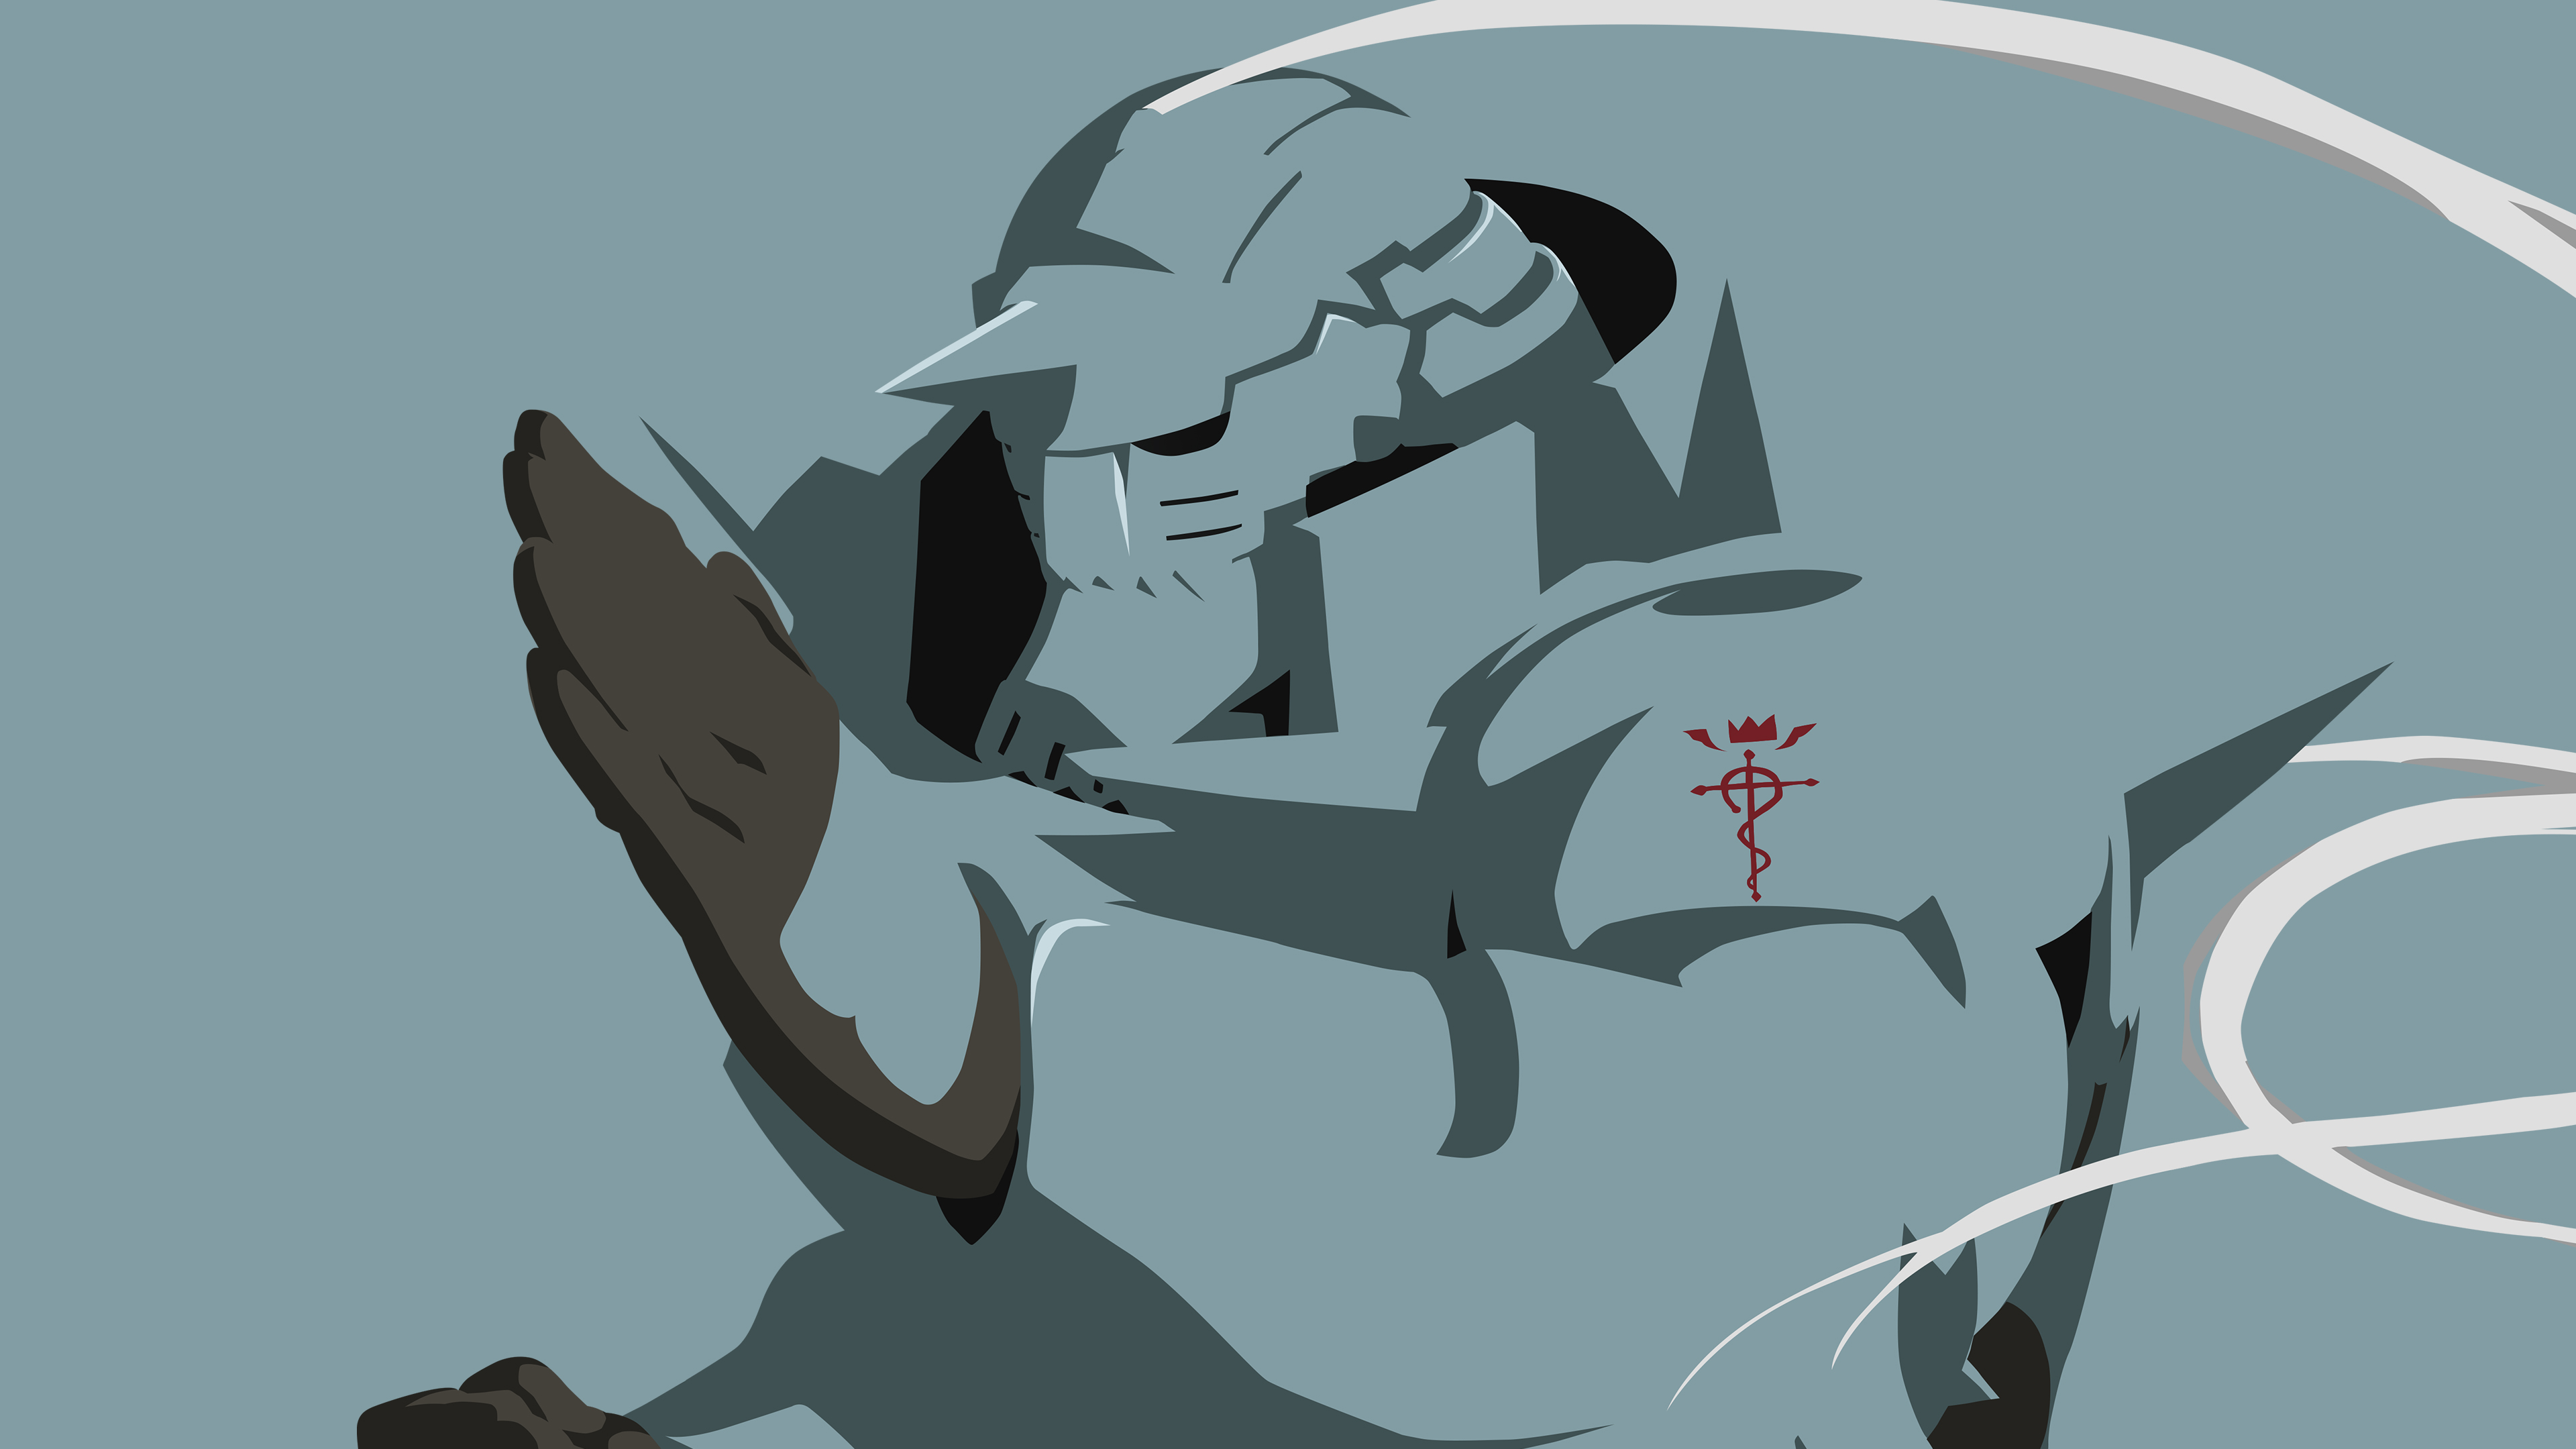 alphonse elric simplified wallpaper - photo #1